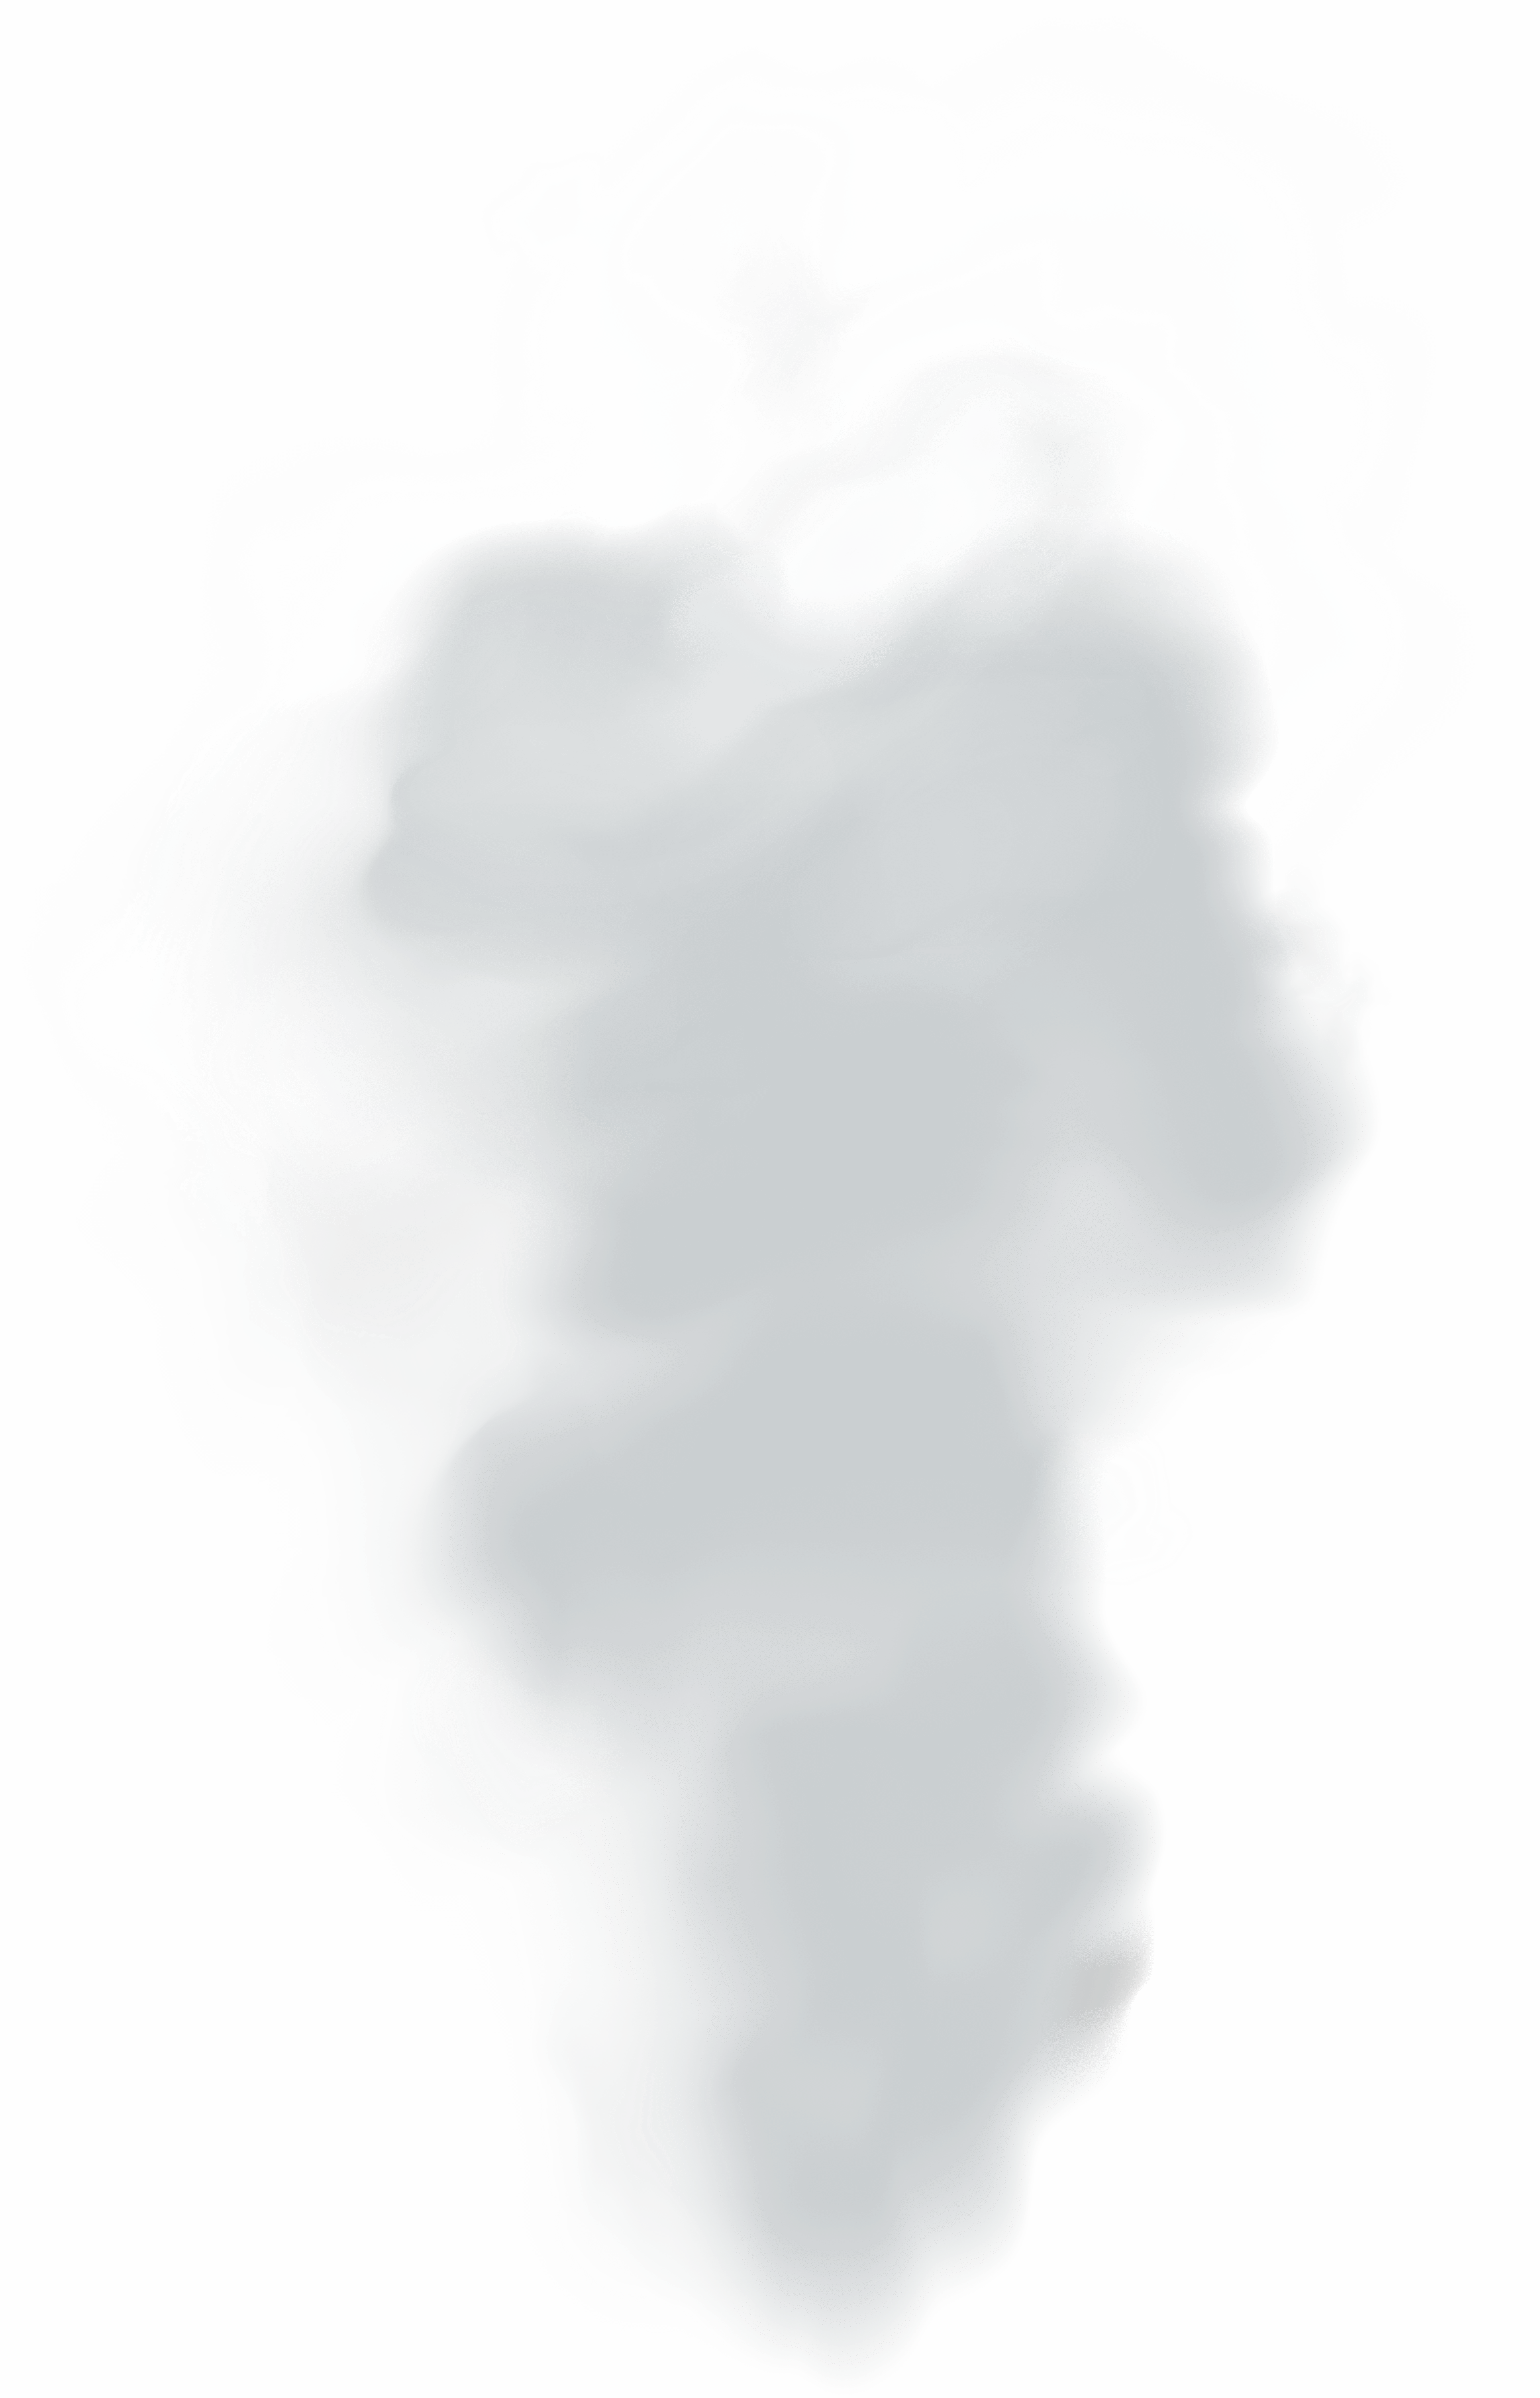 Smoke alpha png. Transparent picture